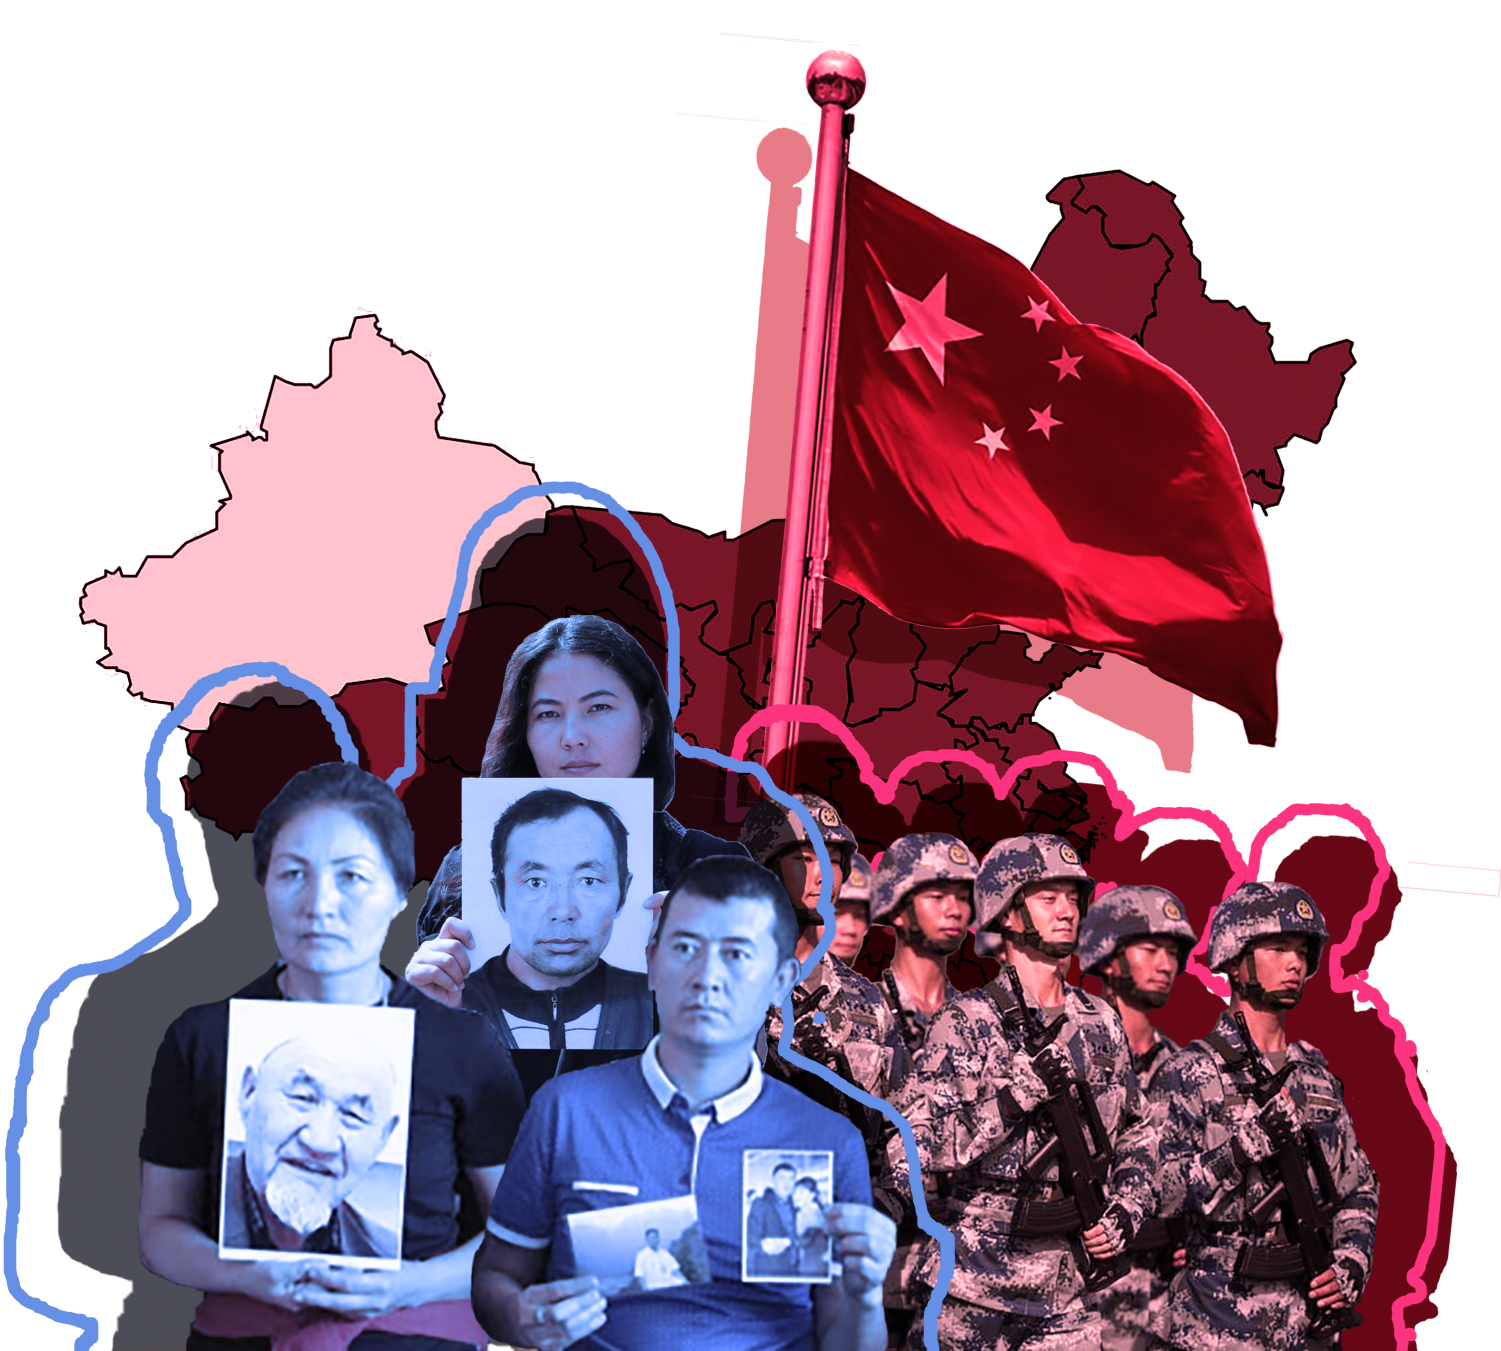 This graphic depicts various Uighurs holding up relatives that have either been killed or missing in detainment camps. To the right, Chinese officials are marching with the flag of China. All figures form the outline of Xinjiang, the region in which the highest number of camps run.